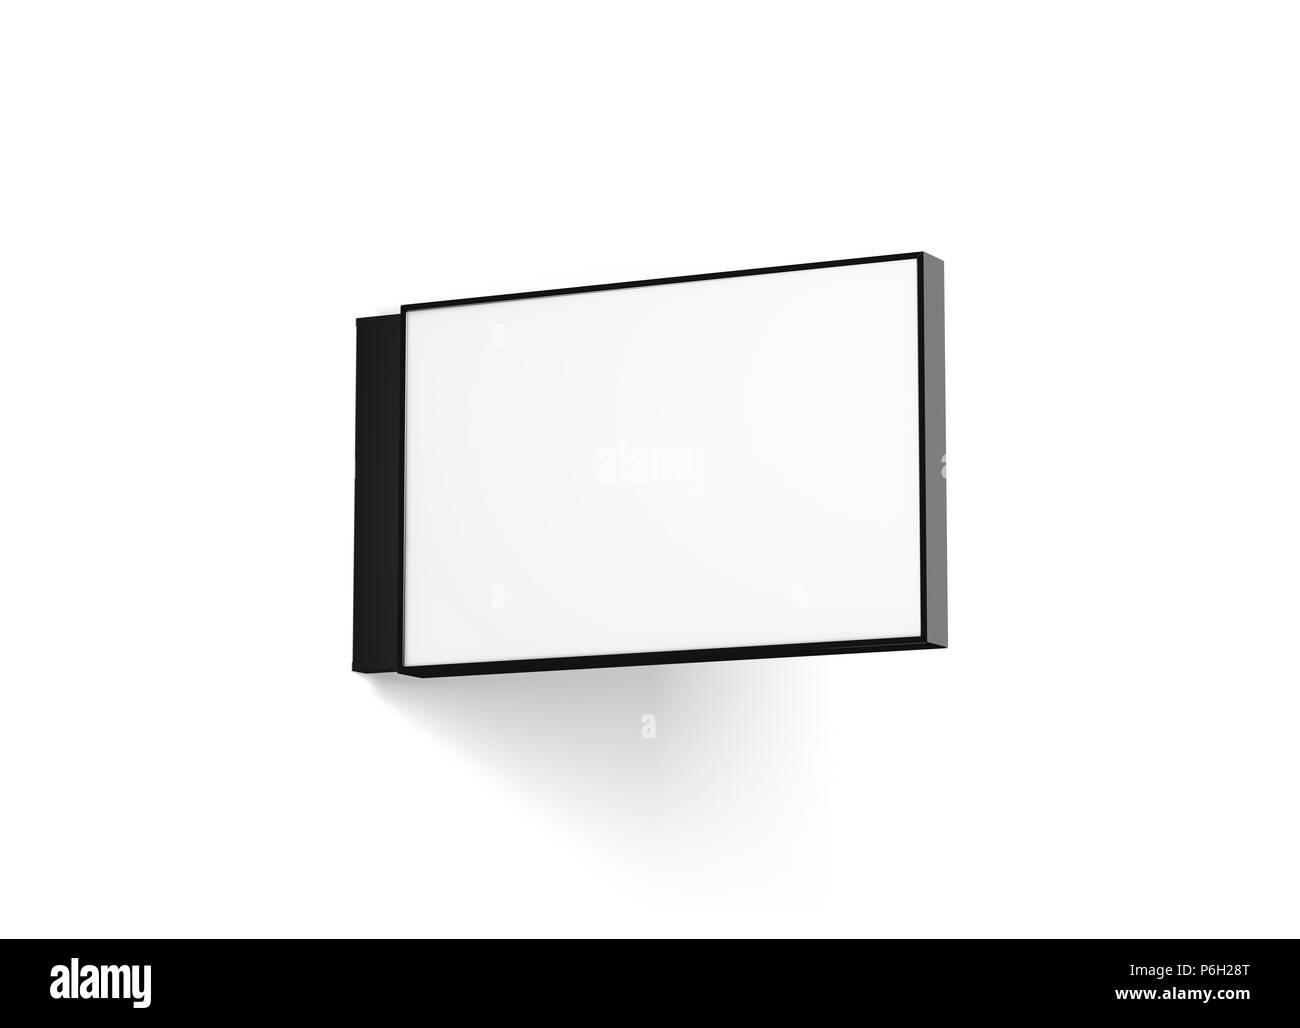 Jump start your school, work, or family project with a. Blank Horizontal Store Signage Design Mockup Isolated 3d Rendering Empty Rectangular Light Box Mock Up Clear Shop Lightbox Template Street Sign Hanging Mounted On The Wall Signplate Stock Photo Alamy